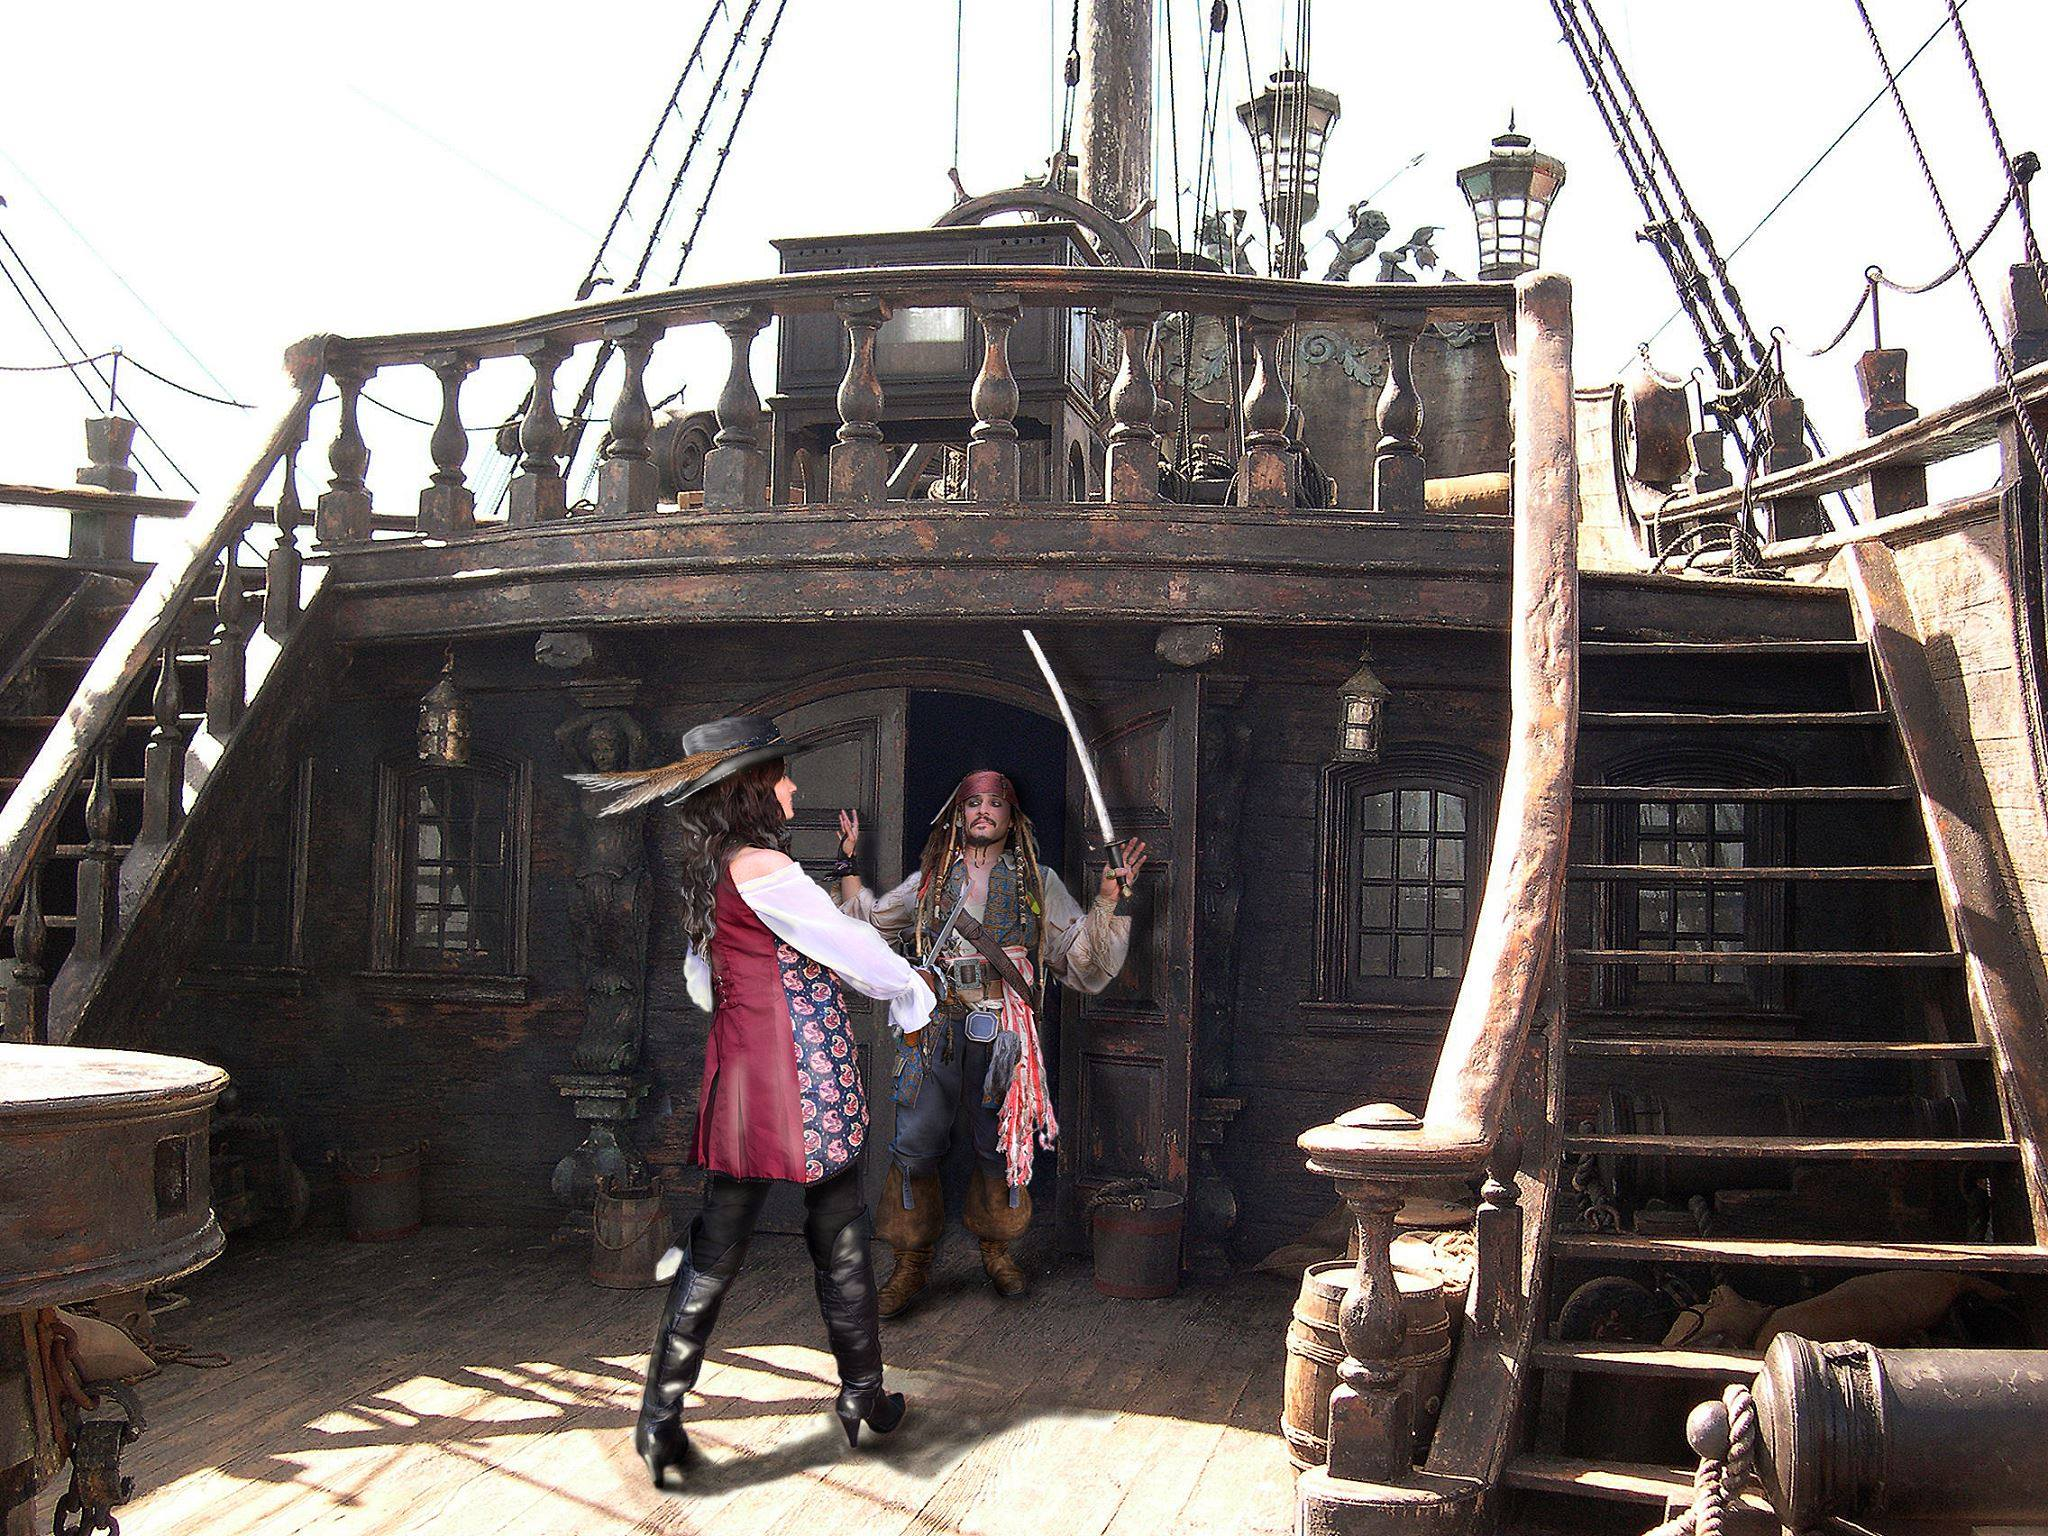 angelica-teach-e-jack-sparrow (4)